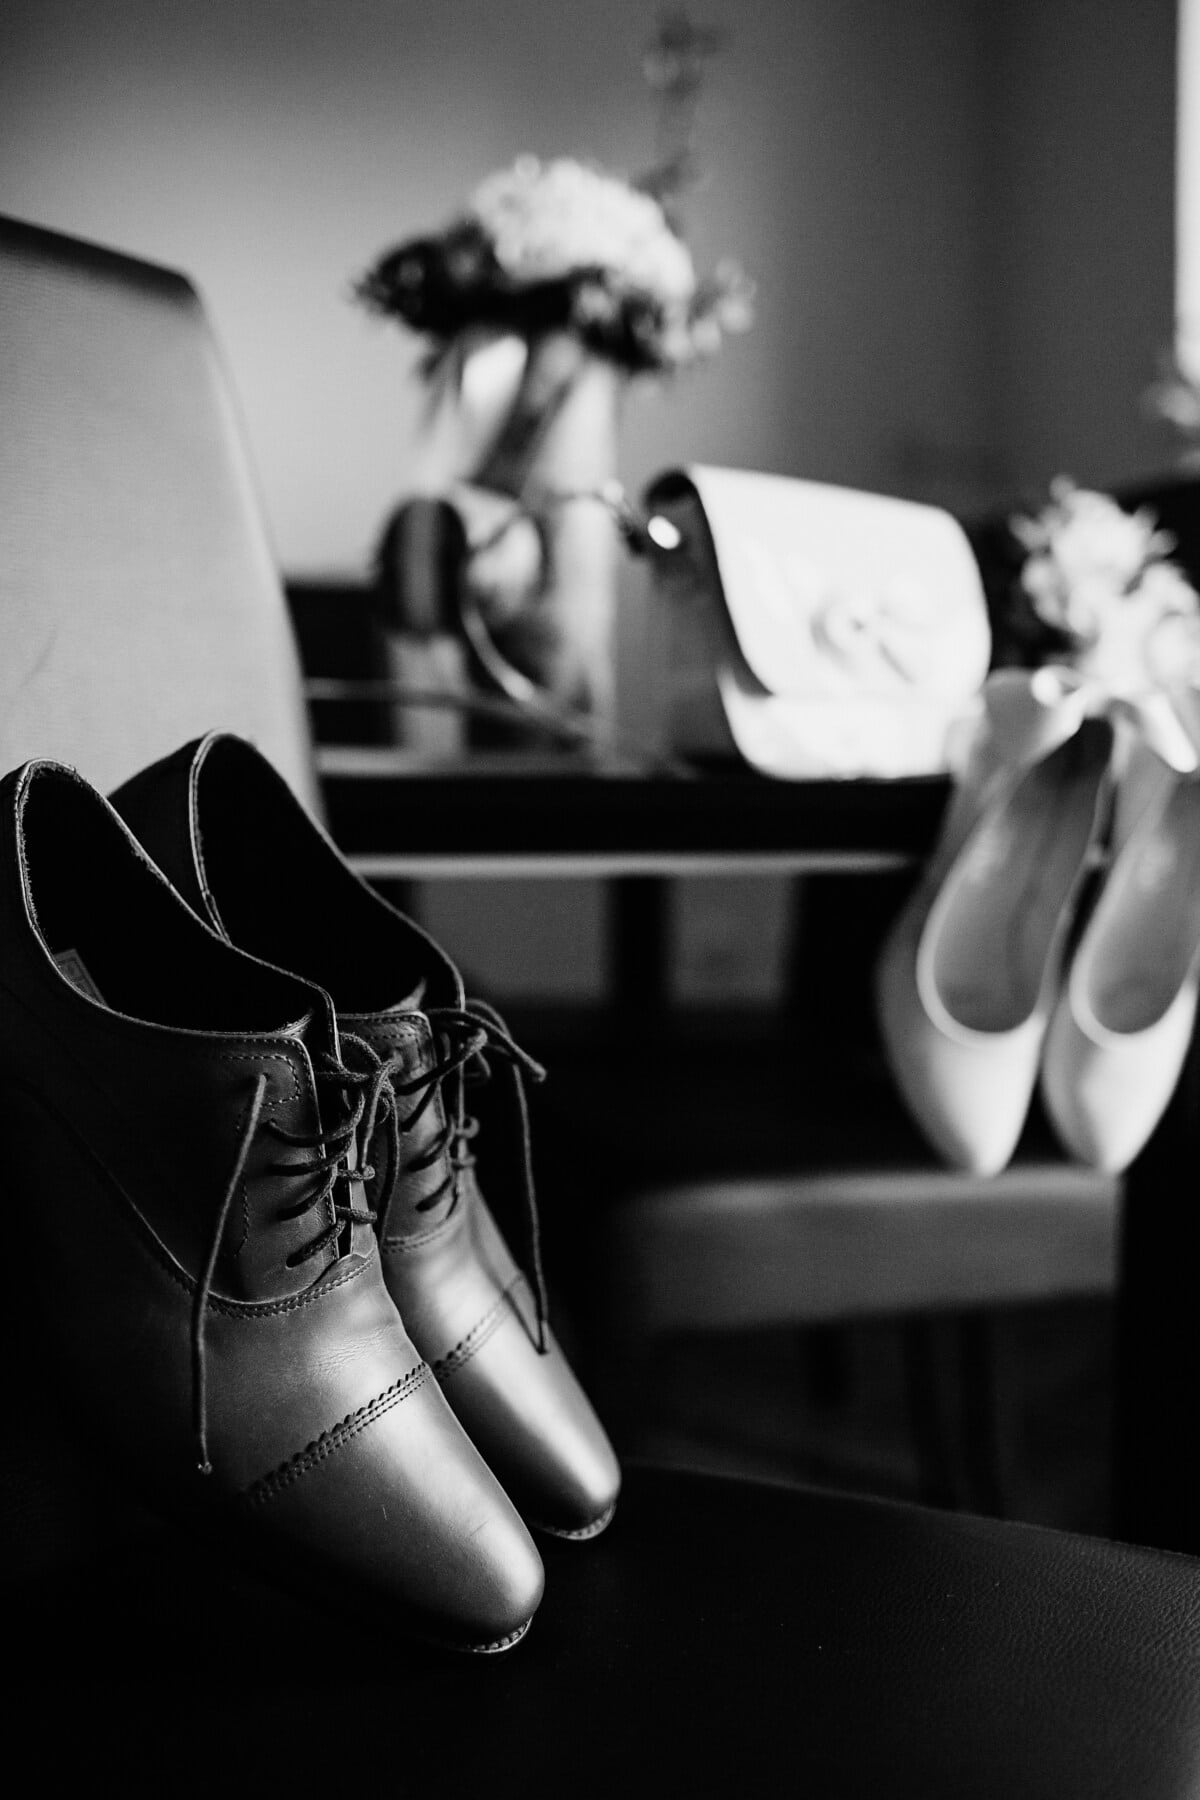 footwear, foot, wedding, monochrome, shoe, fashion, street, leather, couple, studio